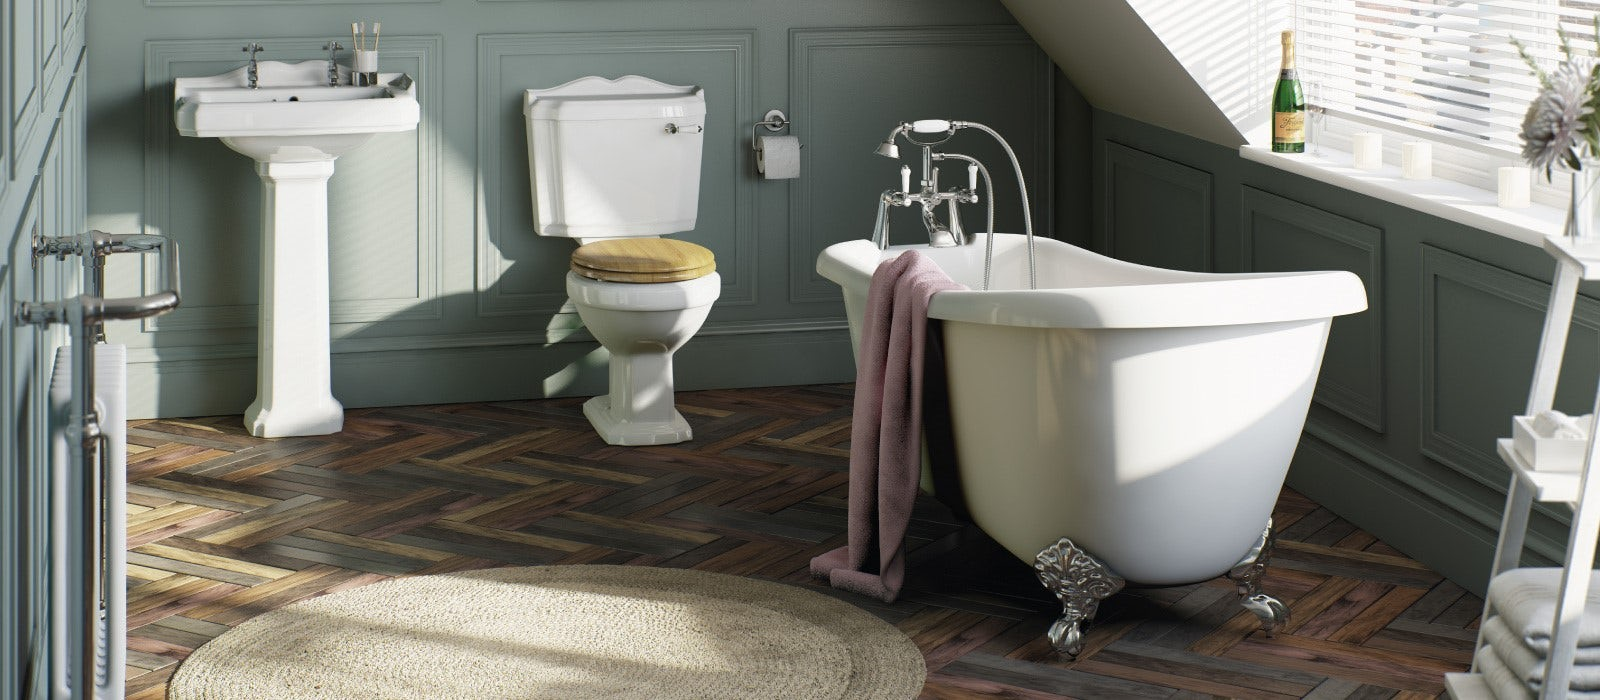 Pleasing Heritage Bathrooms How To Achieve Them On A Budget Theyellowbook Wood Chair Design Ideas Theyellowbookinfo